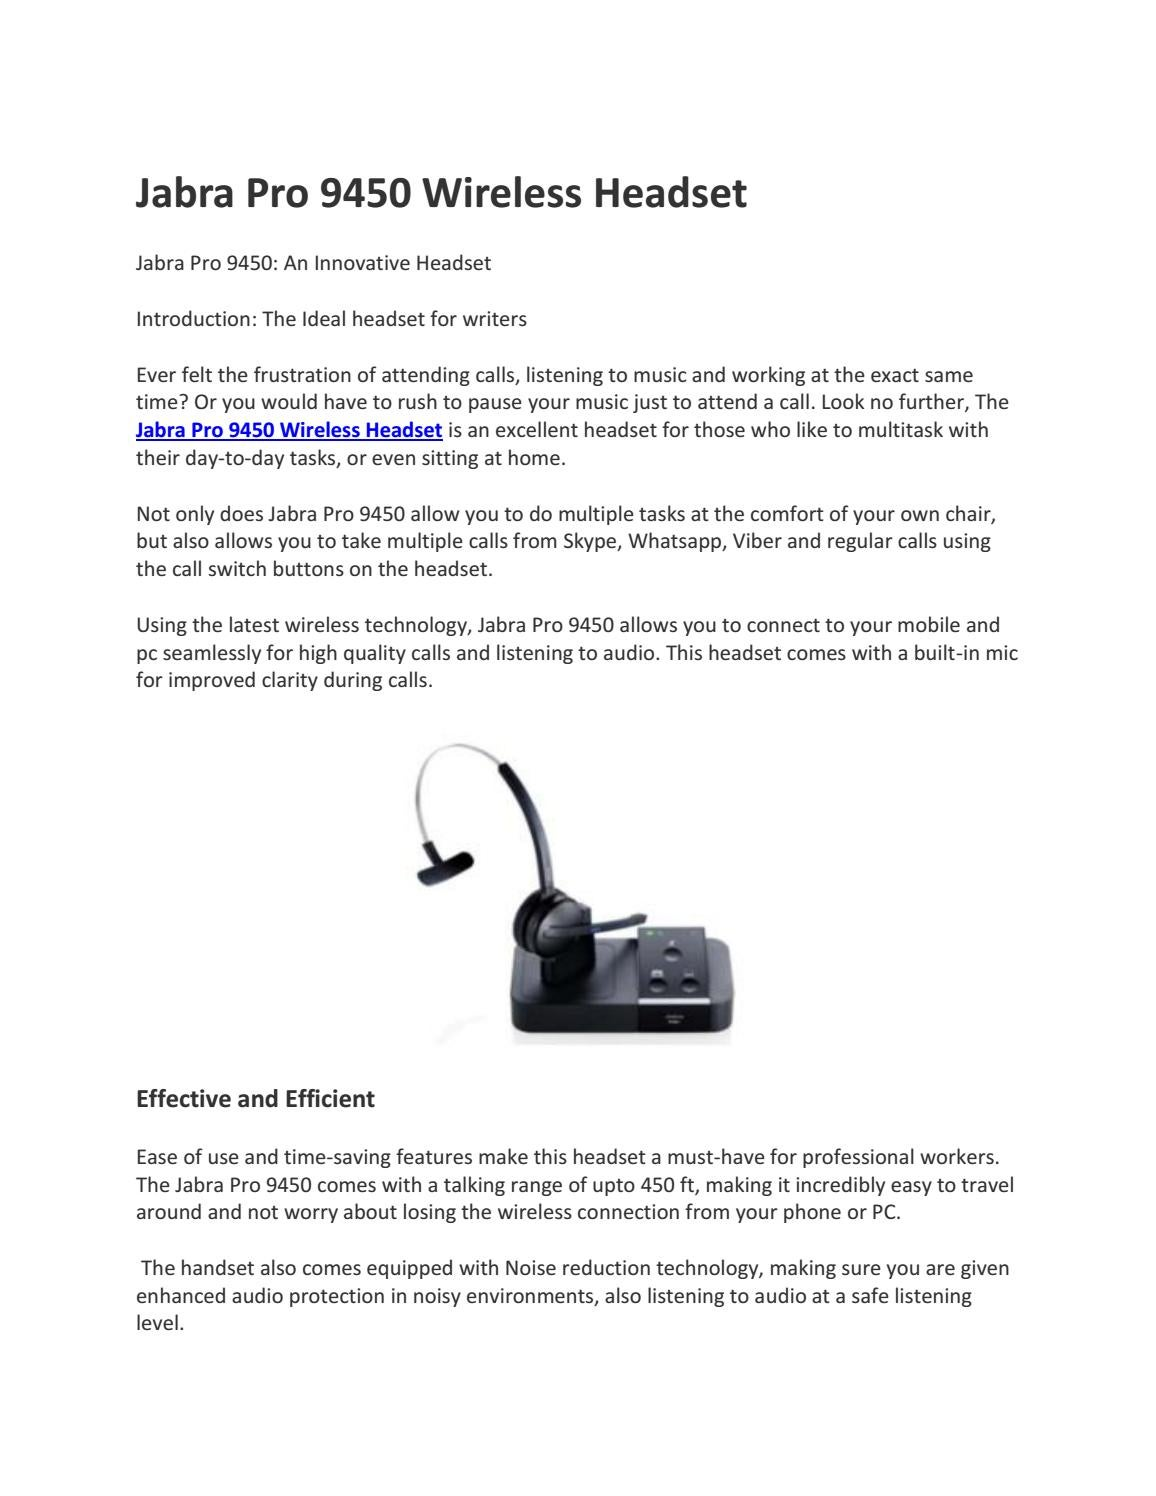 Jabra Pro 9450 Wireless Headset By Findheadsets Issuu